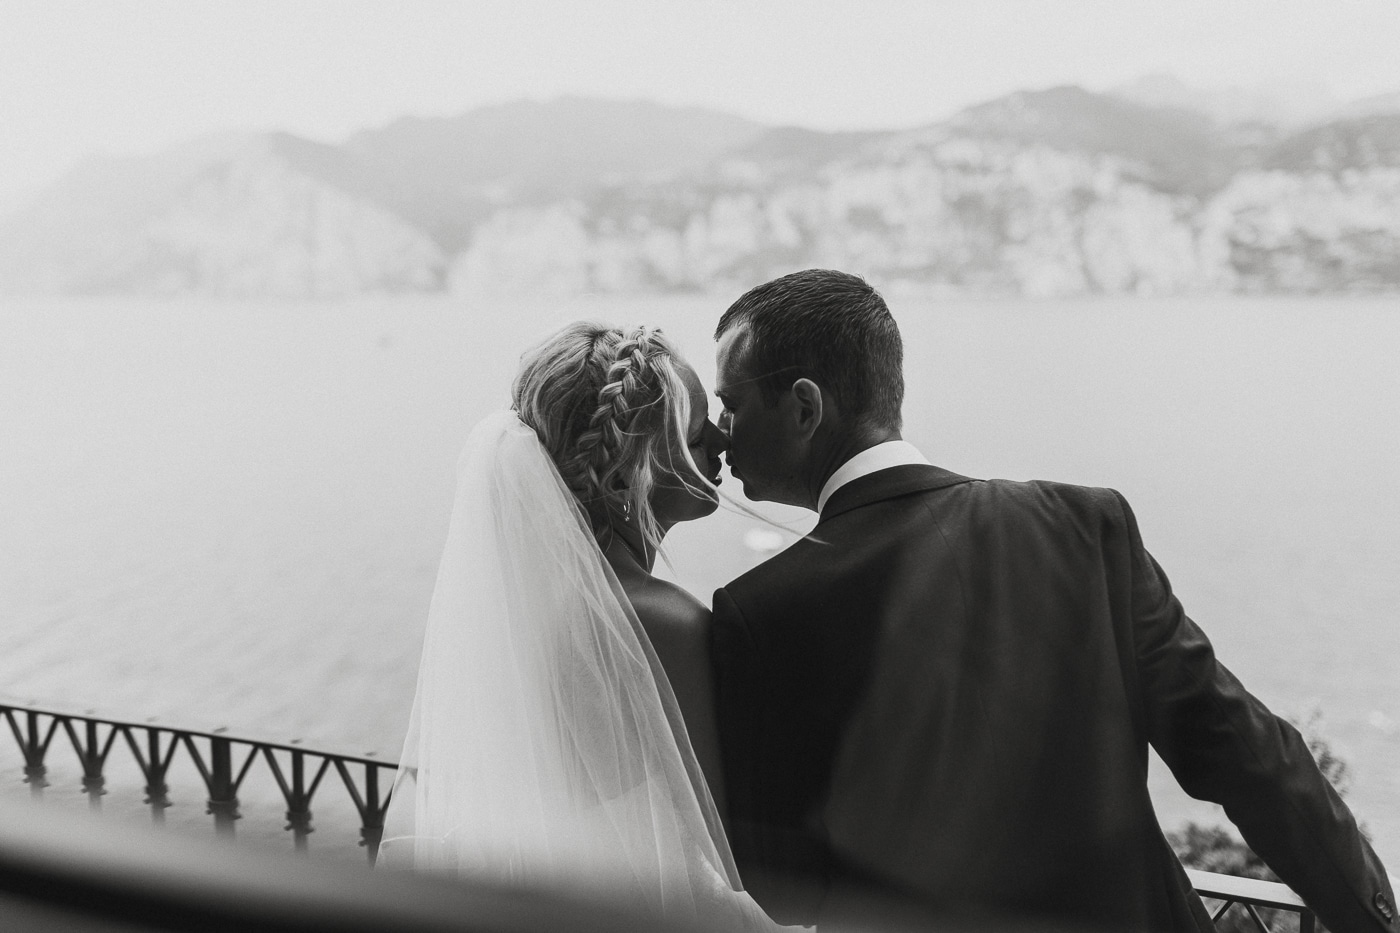 Bride with braided hair and veil kissing suited groom overlooking lake garda in italy